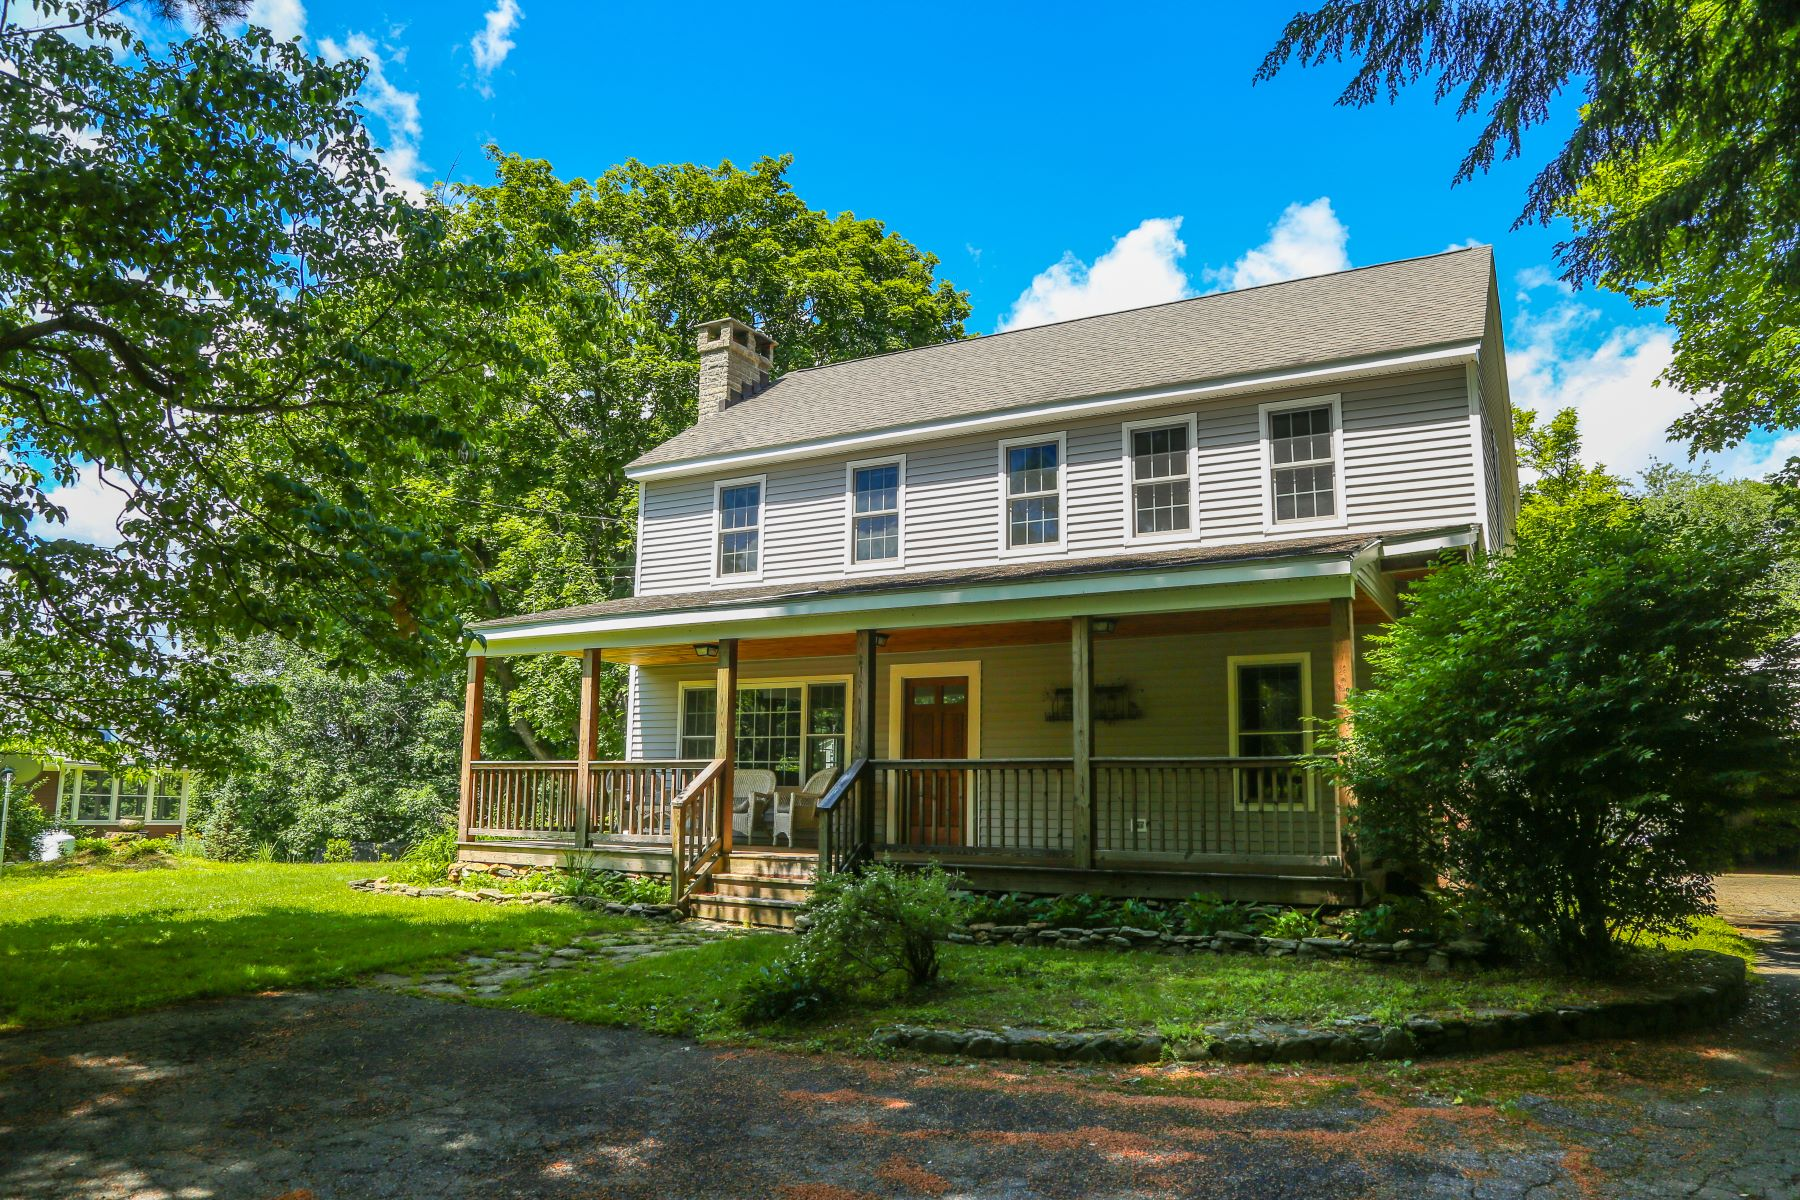 Single Family Home for Sale at Mountain View Farm 67 Fuller Mountain, Kent, Connecticut, 06757 United States